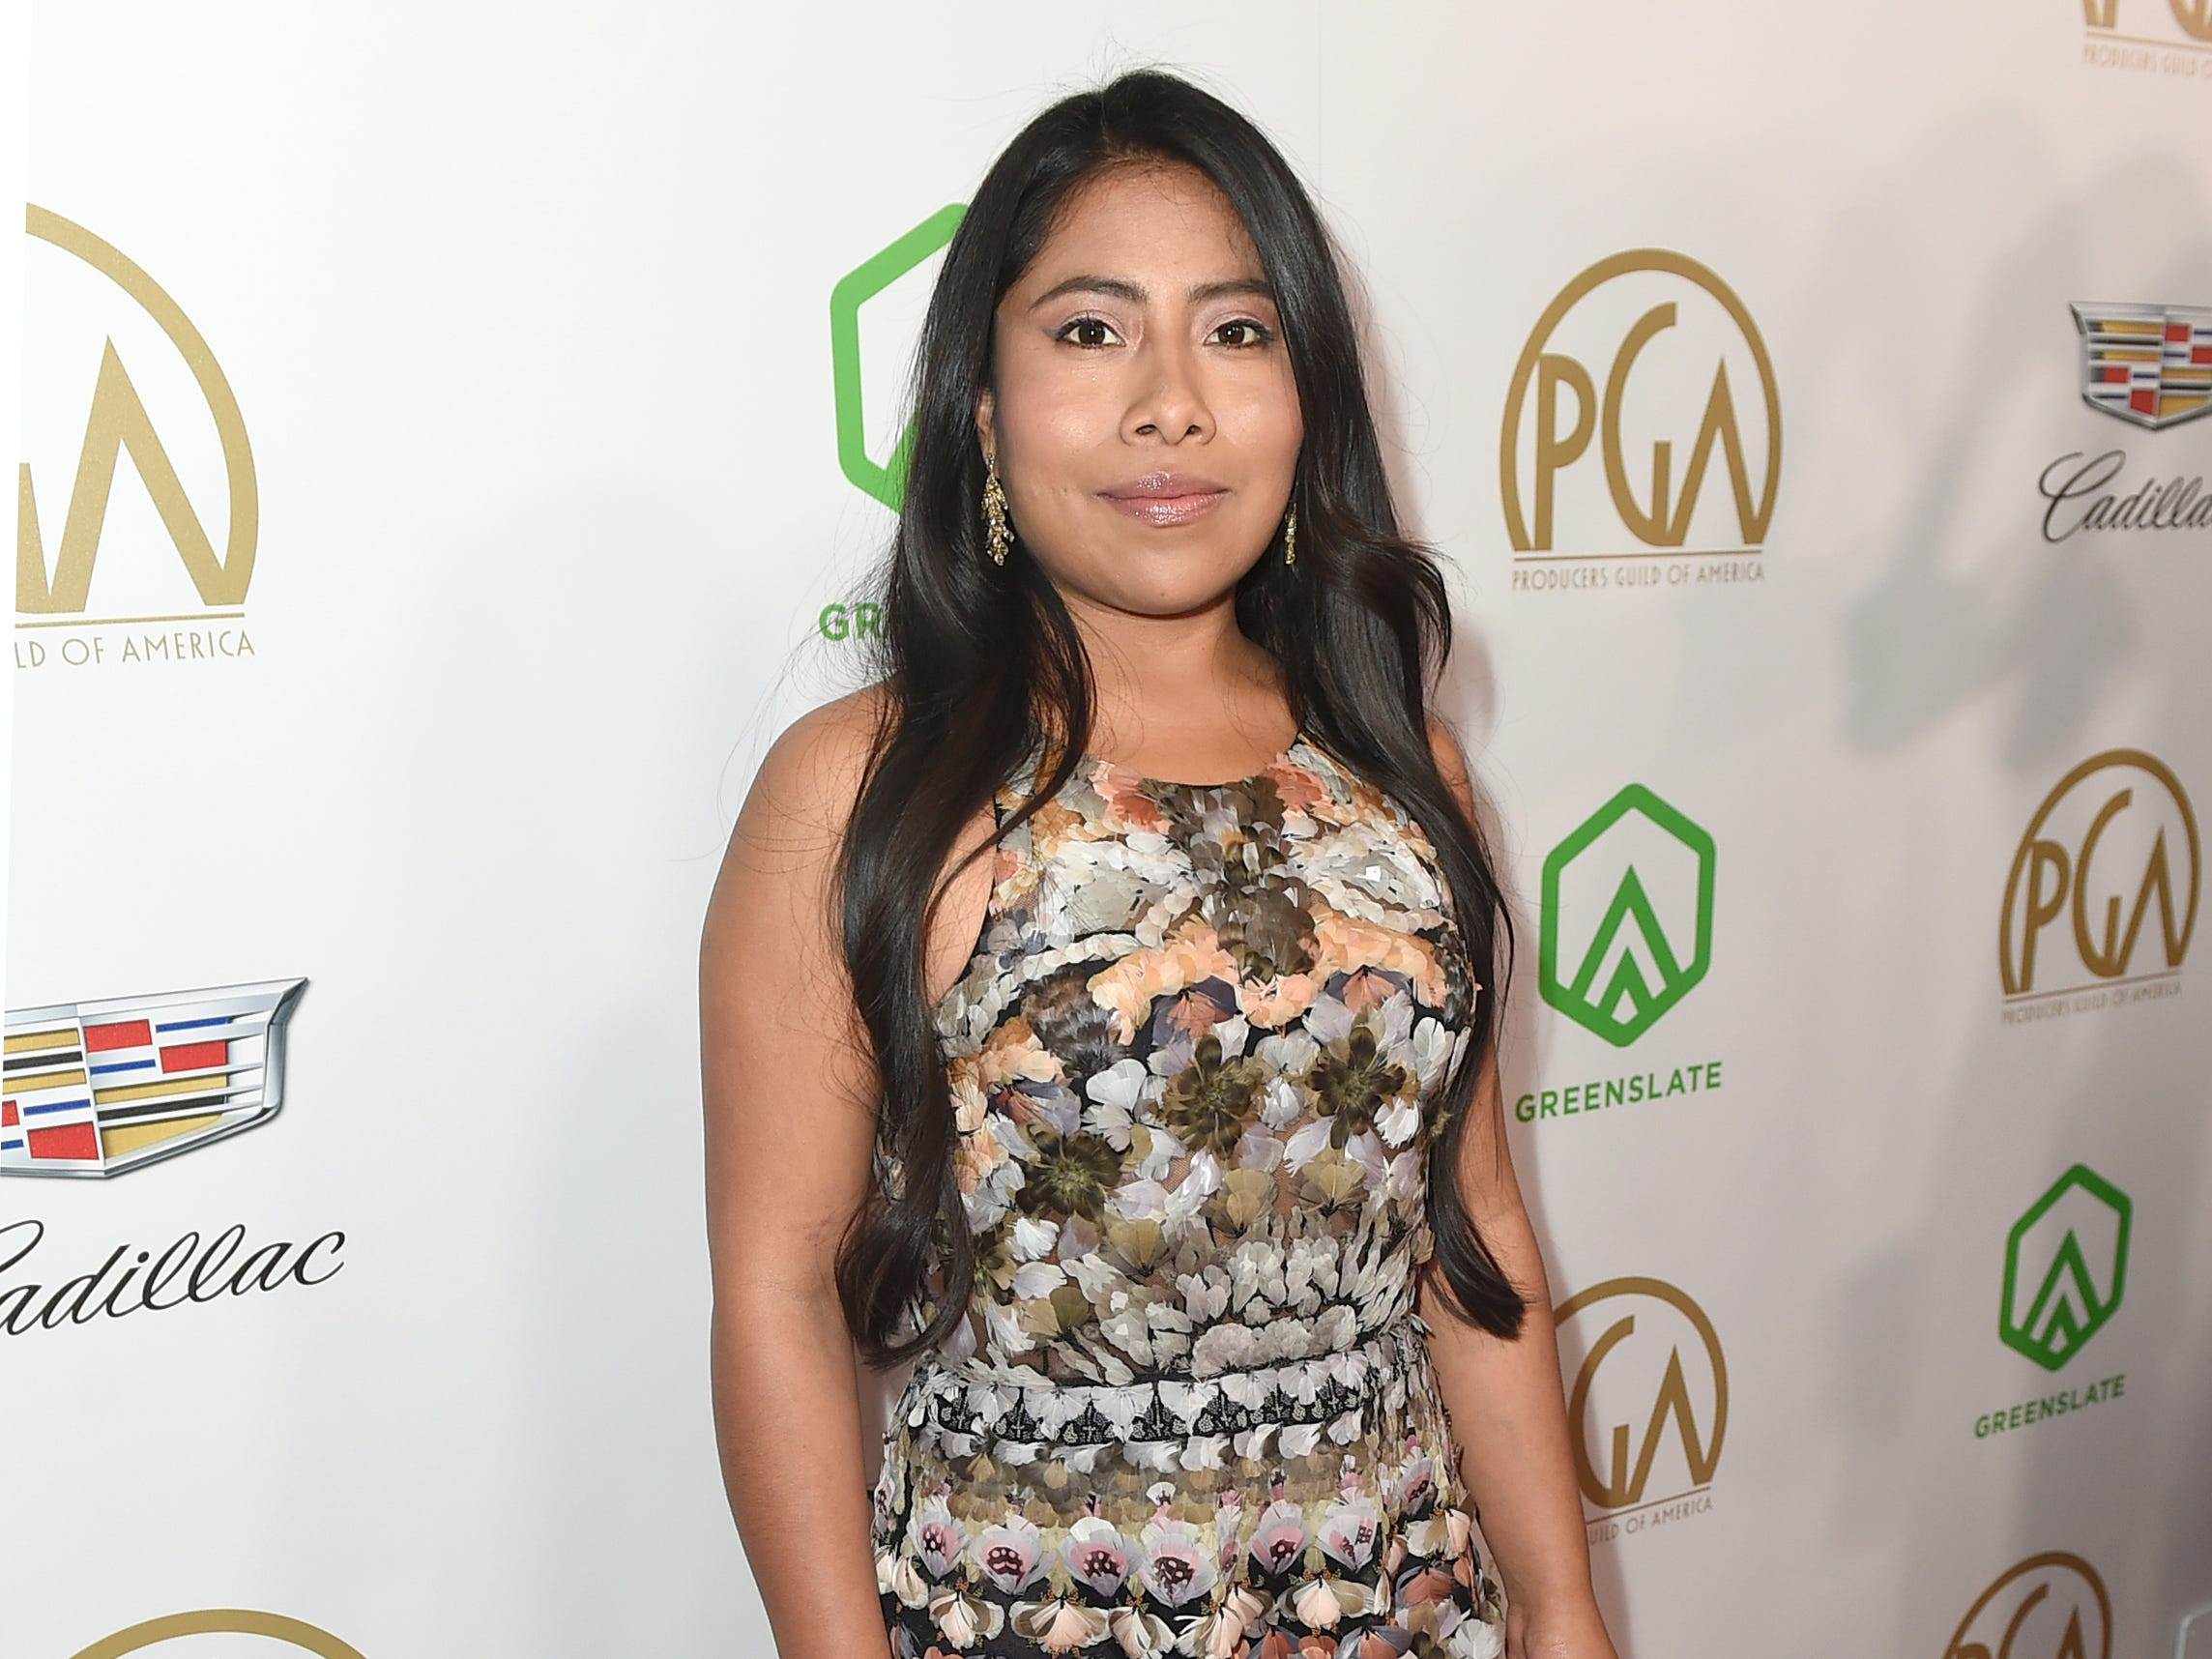 IMAGE DISTRIBUTED FOR PRODUCERS GUILD OF AMERICA - Yalitza Aparicio arrives at the 30th Producers Guild Awards presented by Cadillac at the Beverly Hilton on Saturday, Jan. 19, 2019, in Beverly Hills, Calif. (Photo by Jordan Strauss/Invision for Producers Guild of America/AP Images) ORG XMIT: CALB105